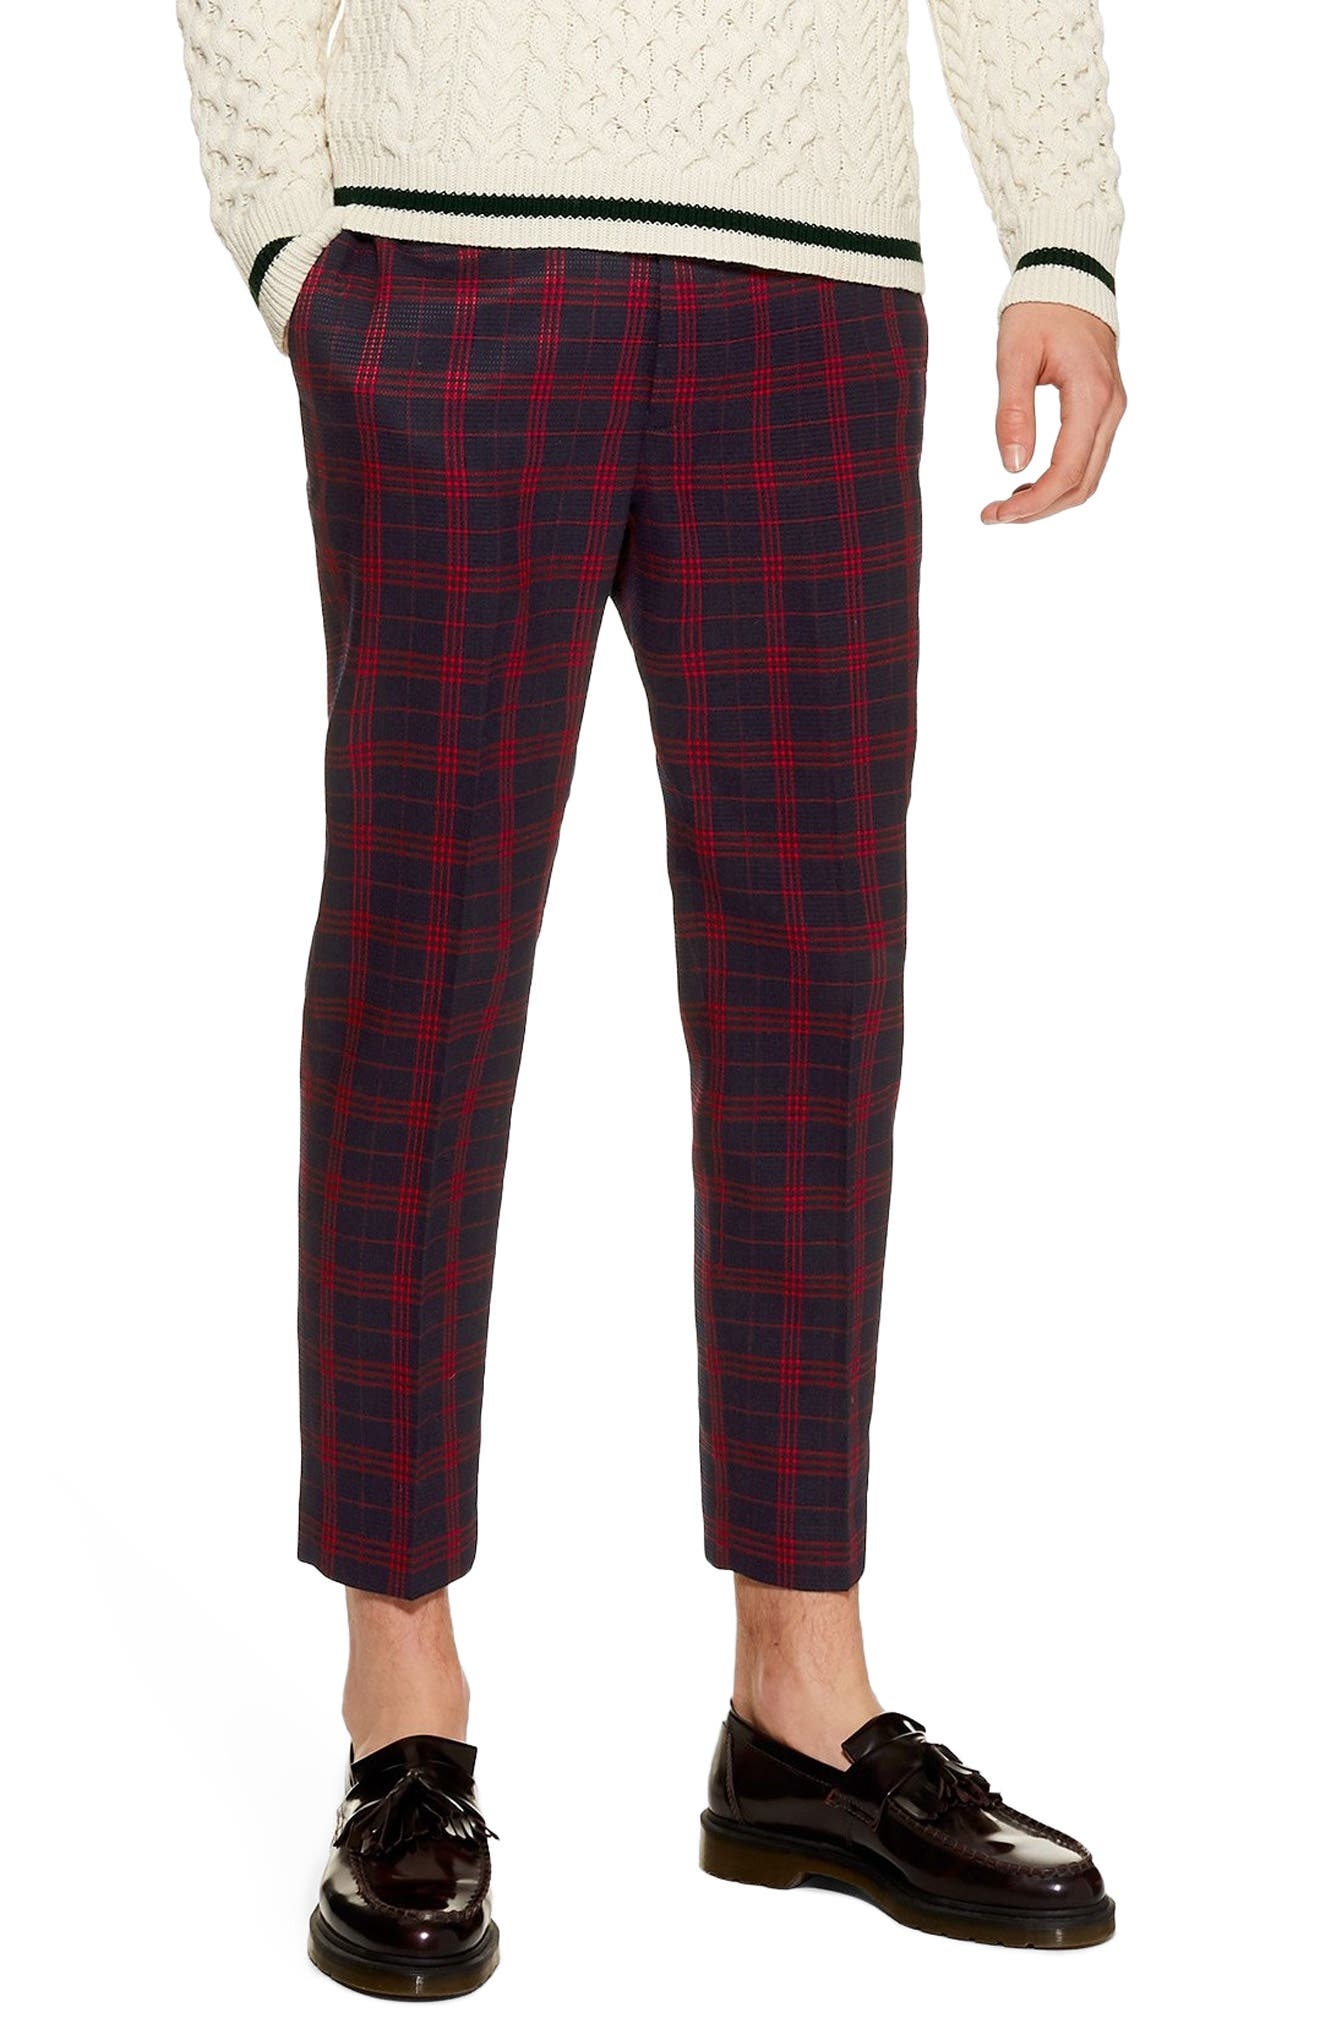 TOPMAN, Plaid Tapered Trousers, Main thumbnail 1, color, 401